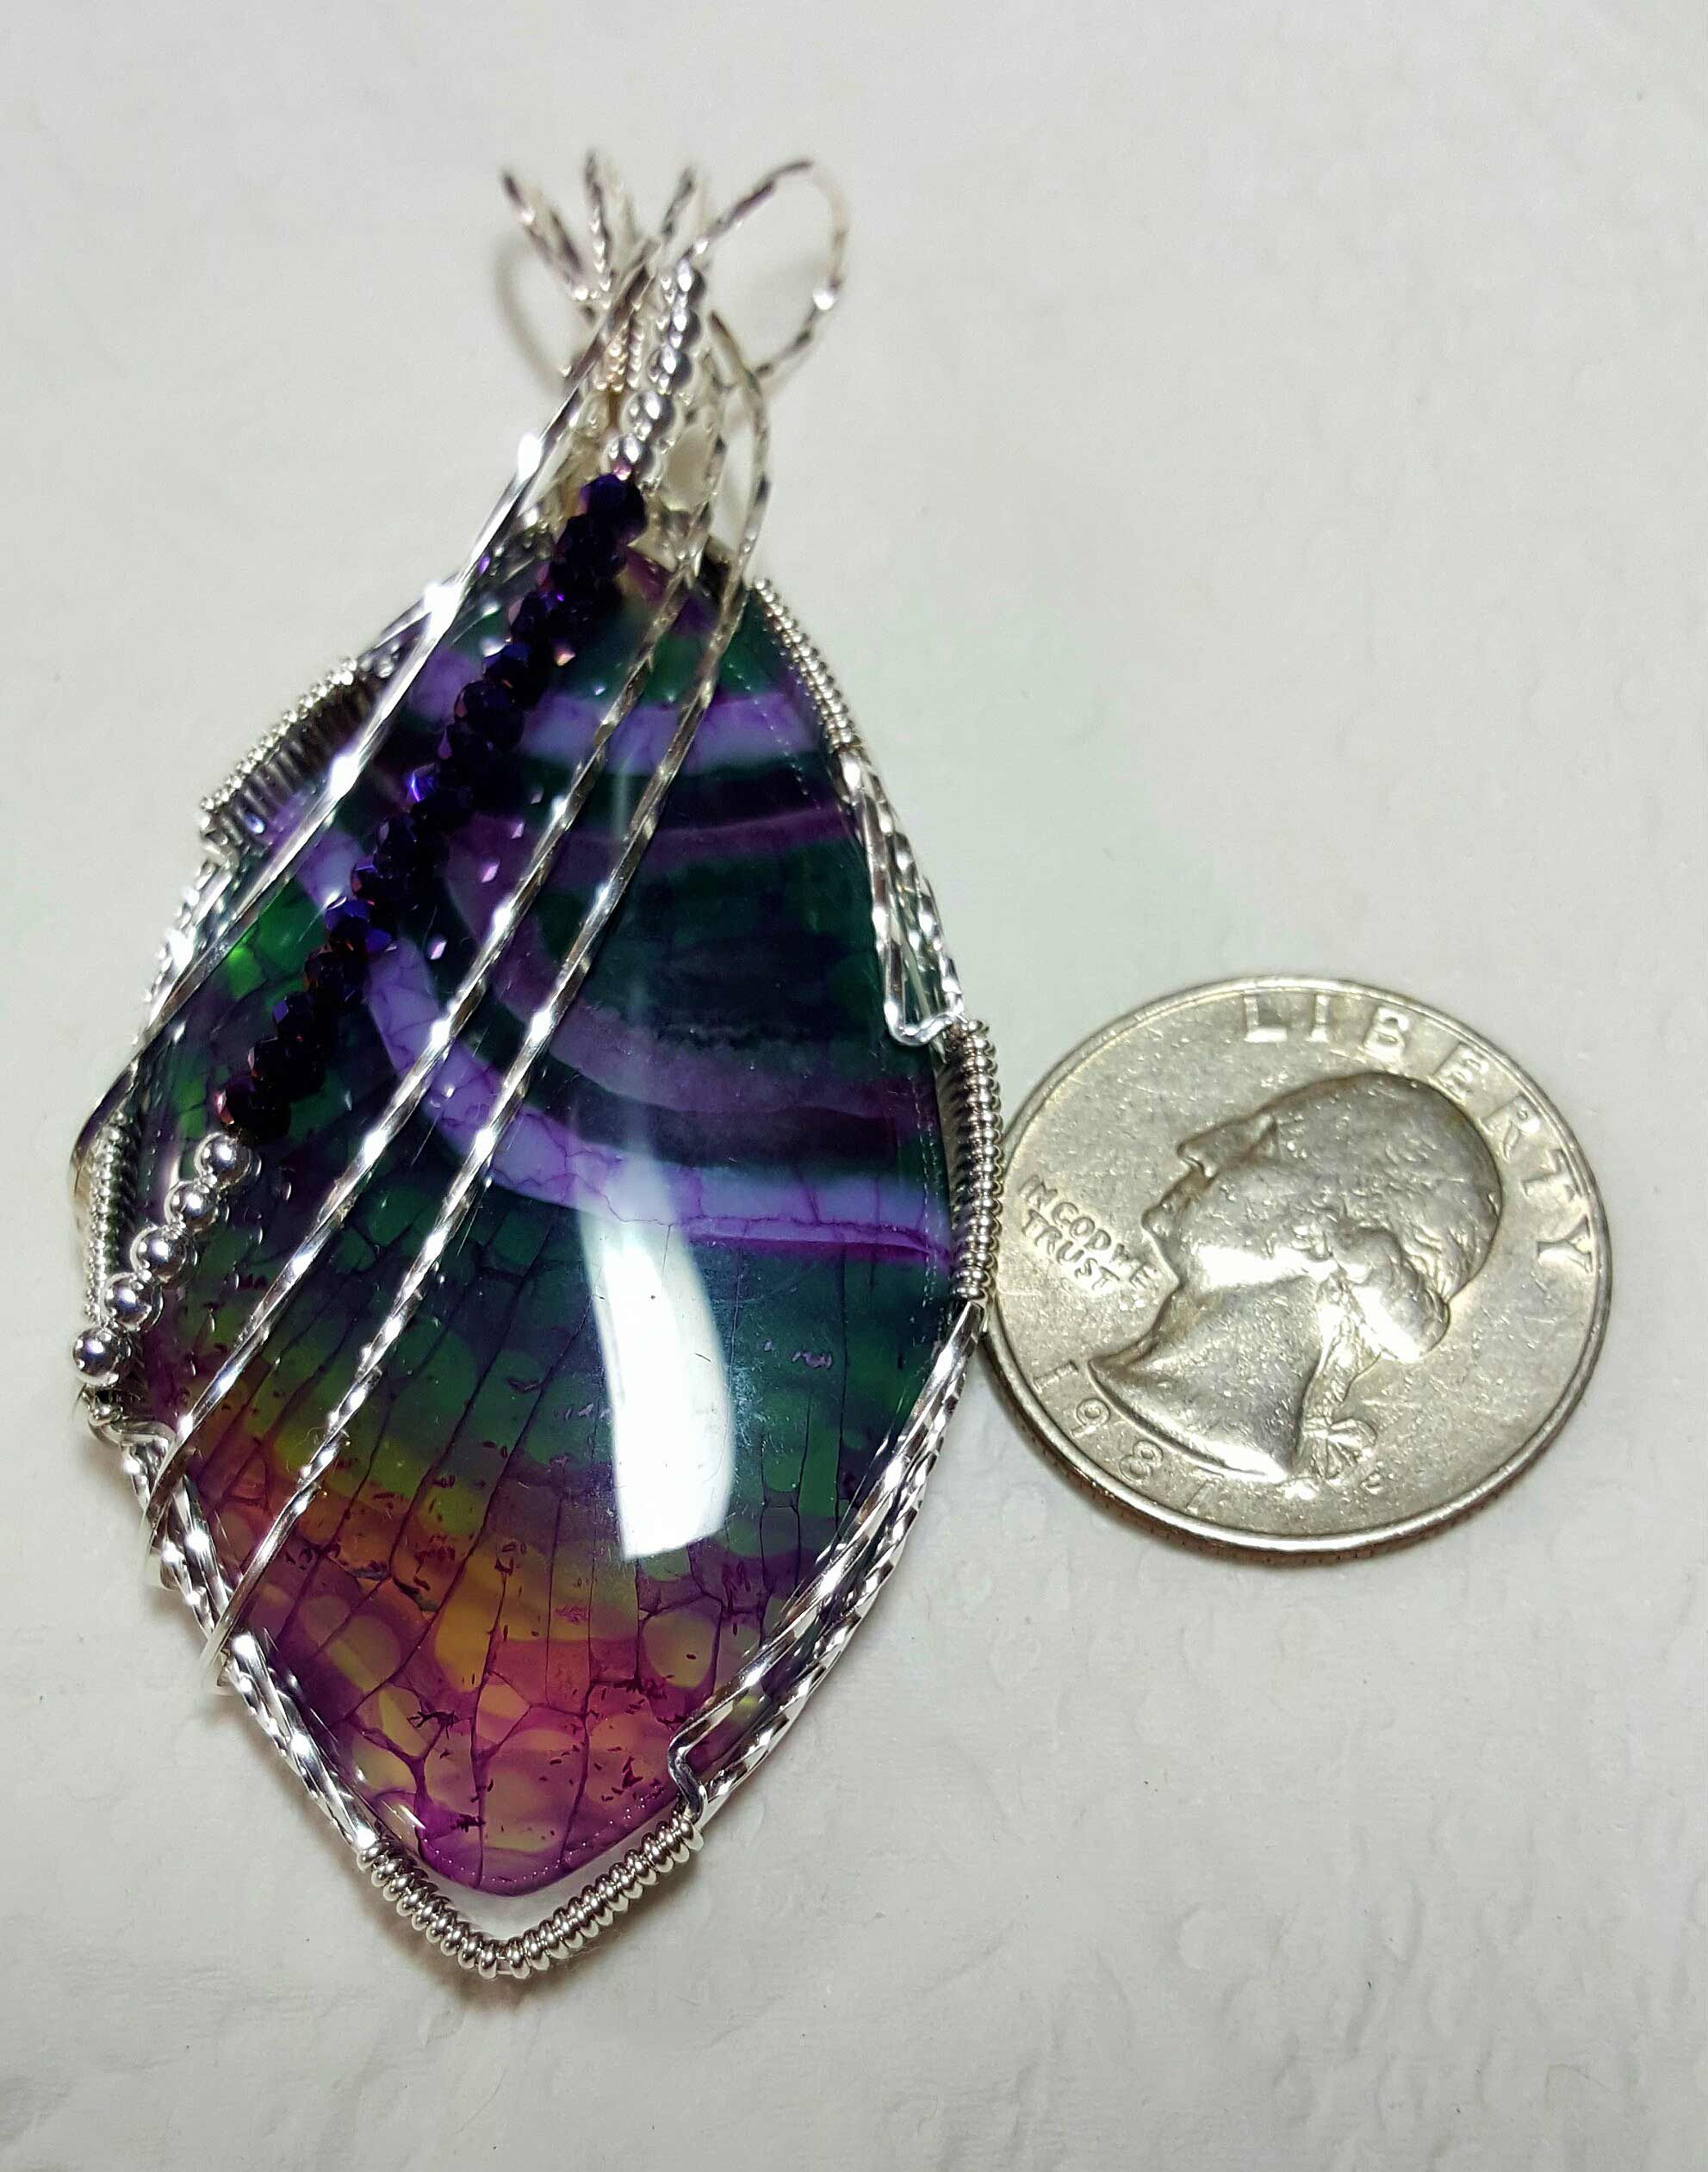 Dragon Veins Fire Agate wrapped in Sterling Silver with Silver plated and Chinese Crystal beads By Toribeth Designs